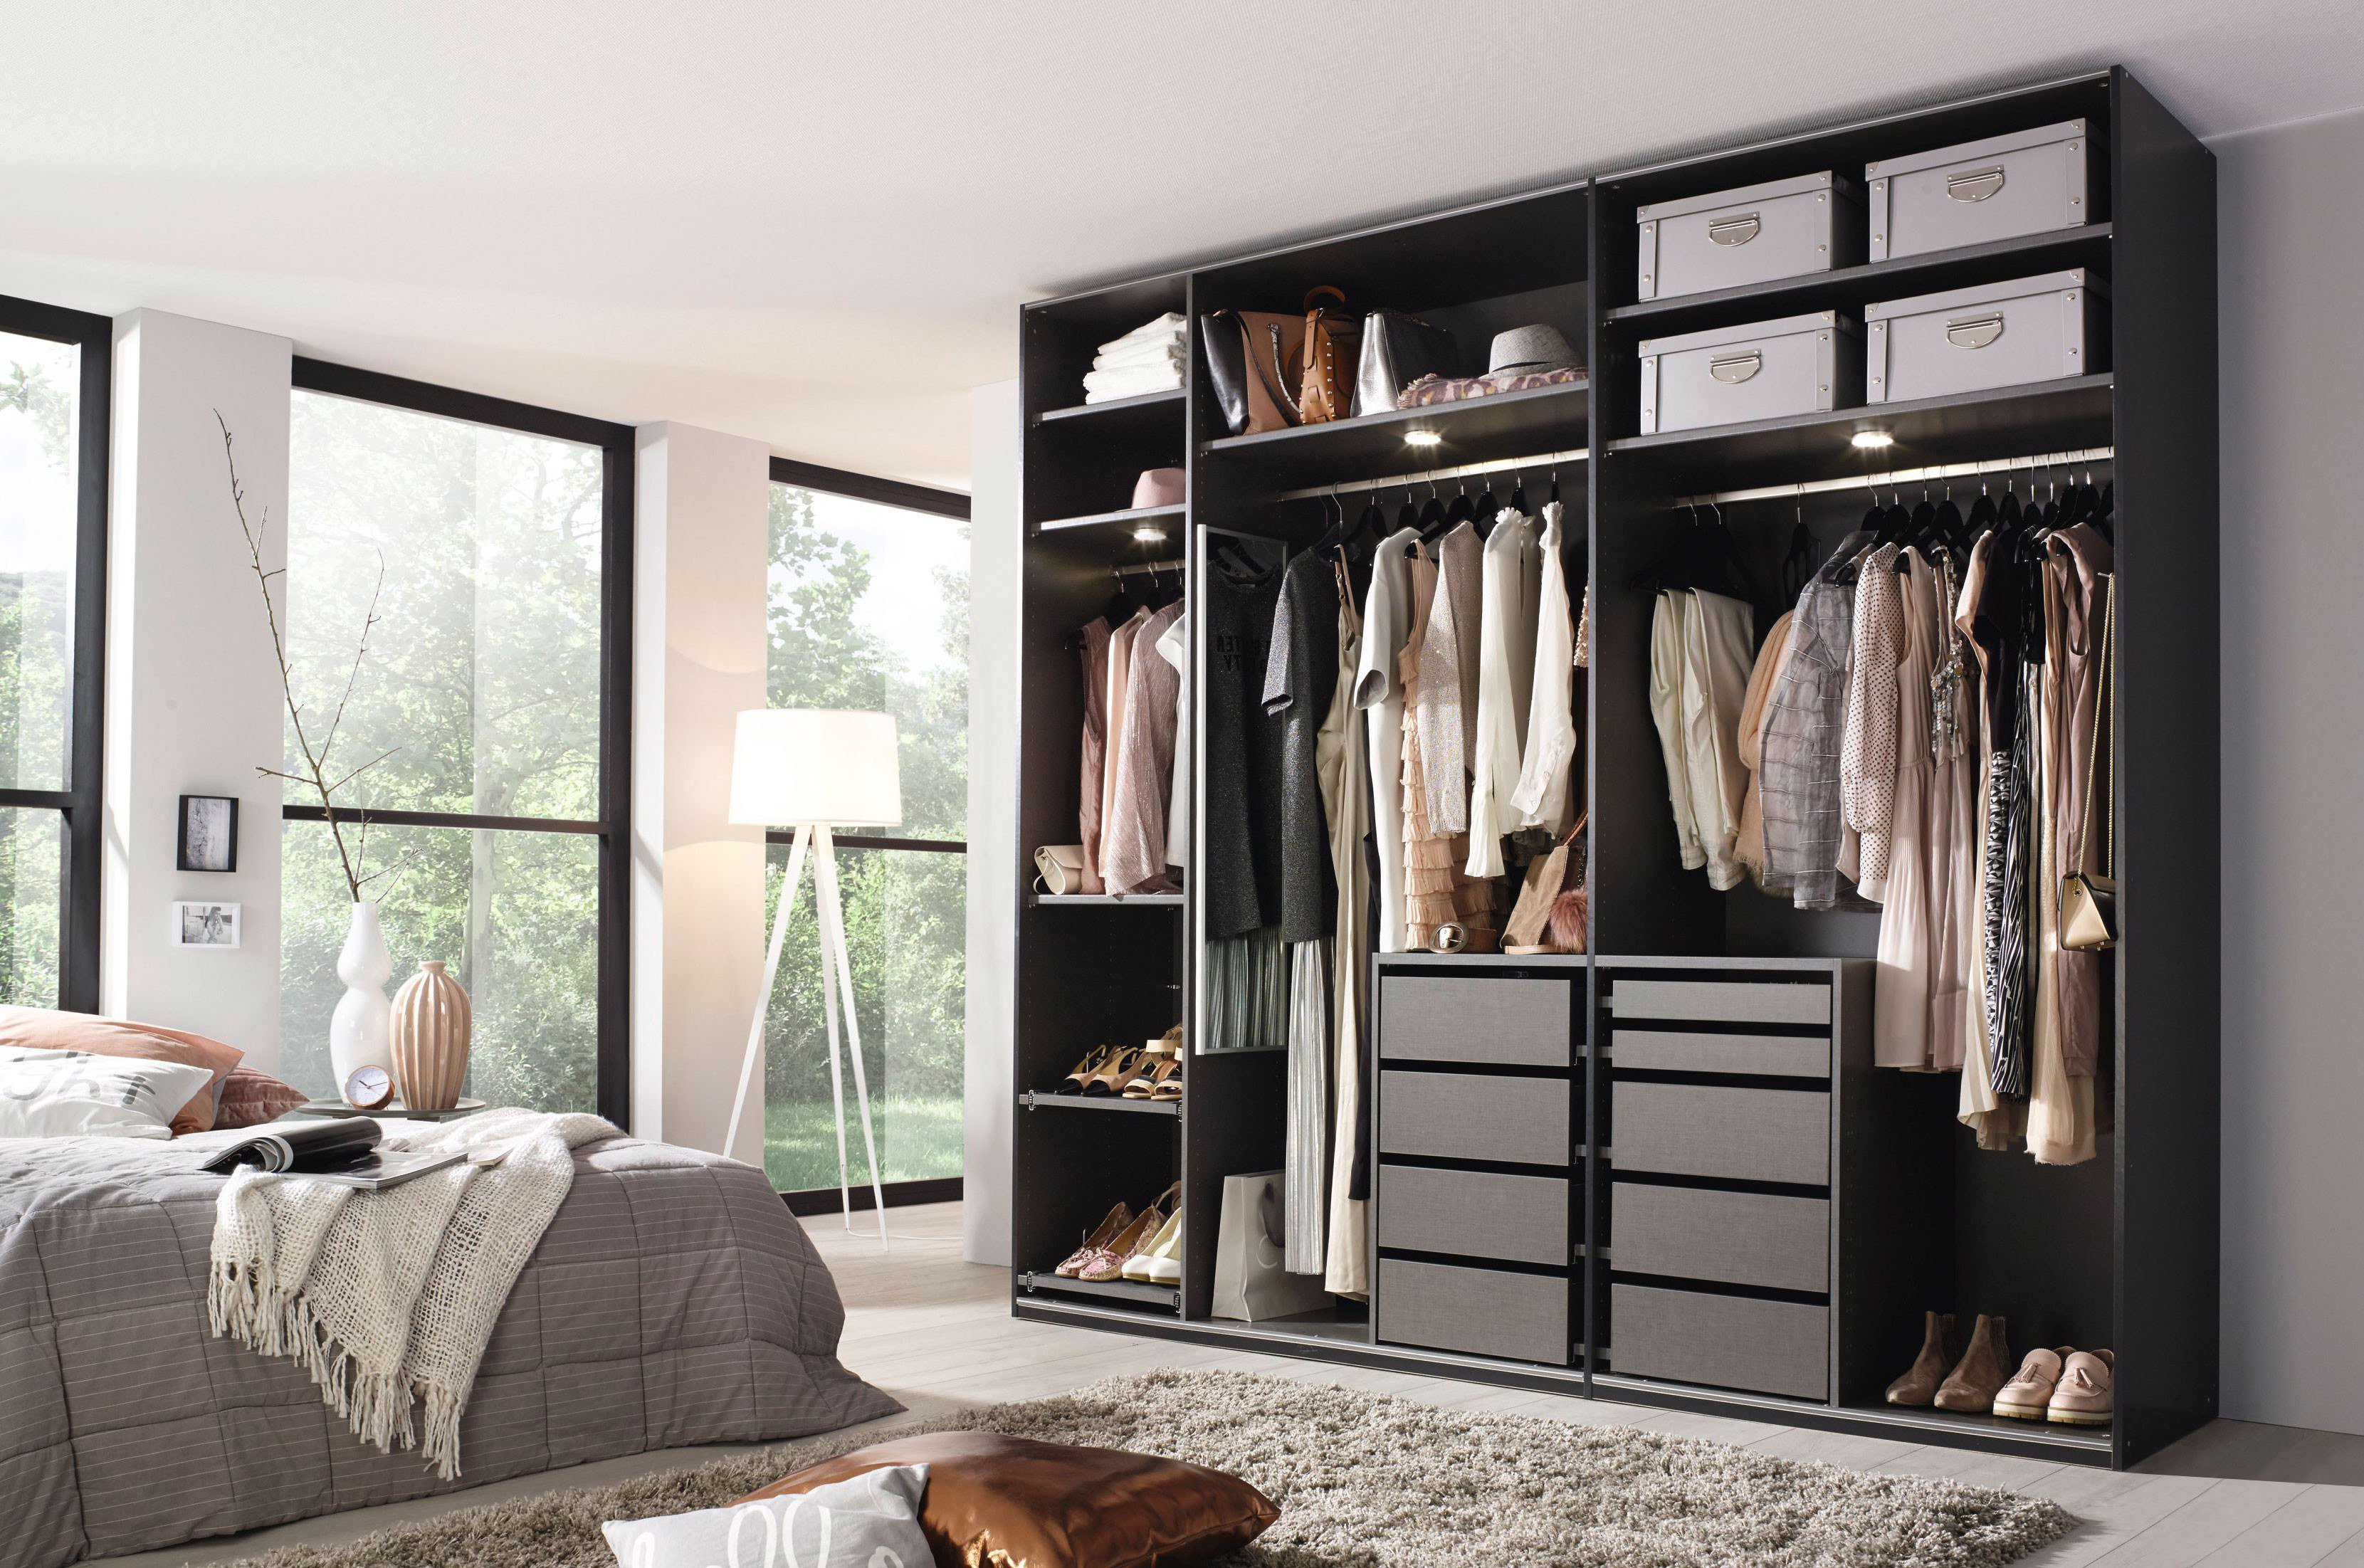 kleiderschrank offenes system ih41 hitoiro. Black Bedroom Furniture Sets. Home Design Ideas